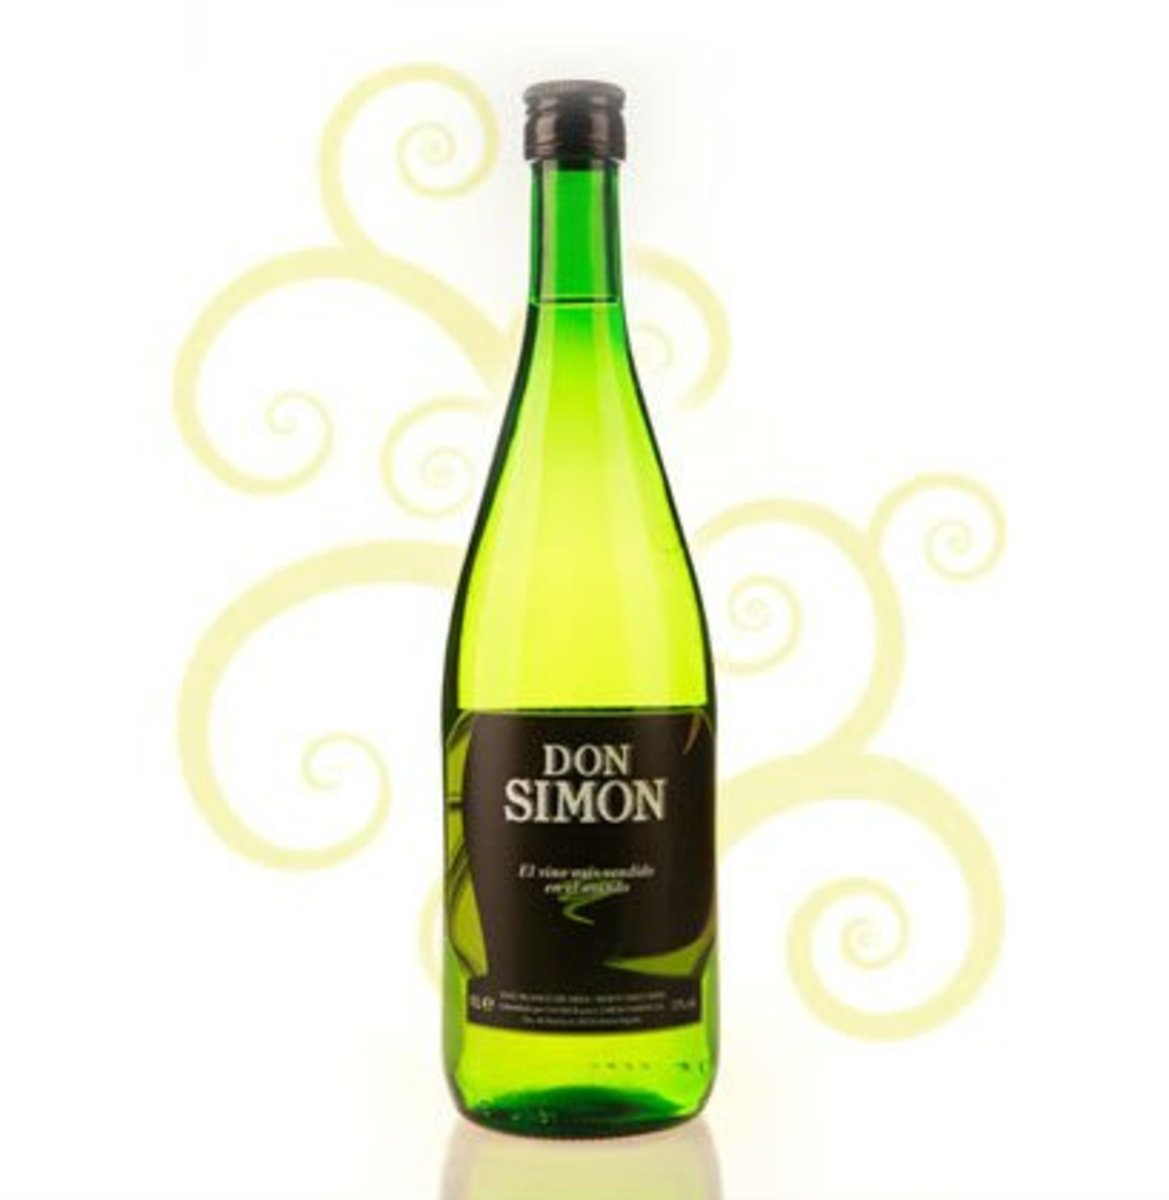 Don Simon (1 Litre bottle) Wine White-NV